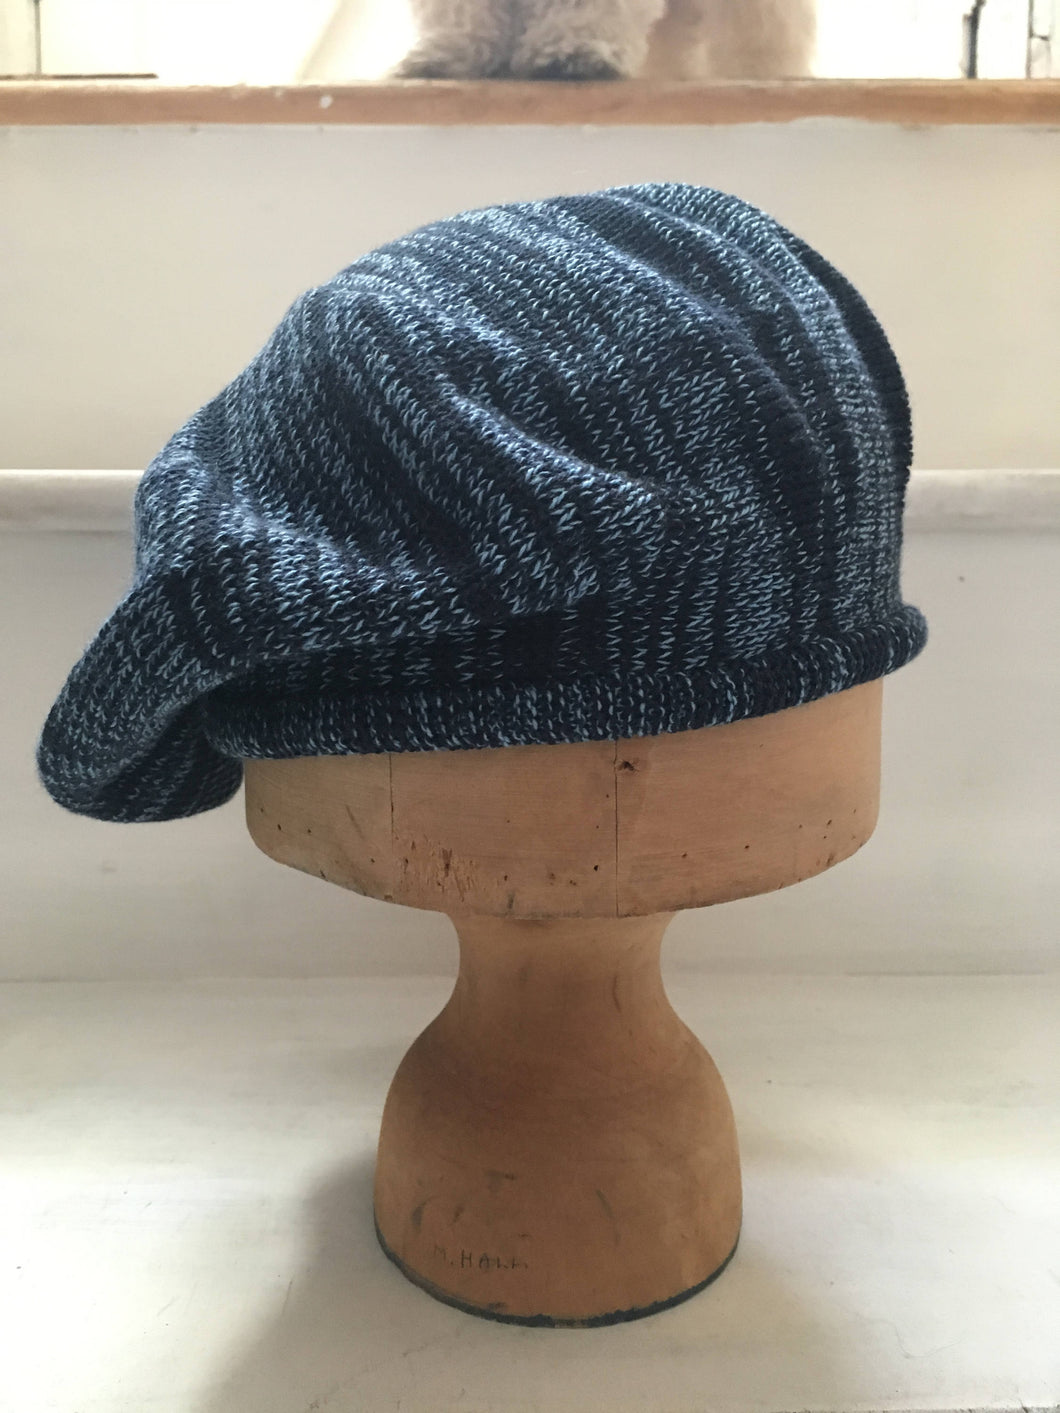 Lord and Taft Denim and Navy Blue Marled Effect Knit Cotton Tam Style Beret